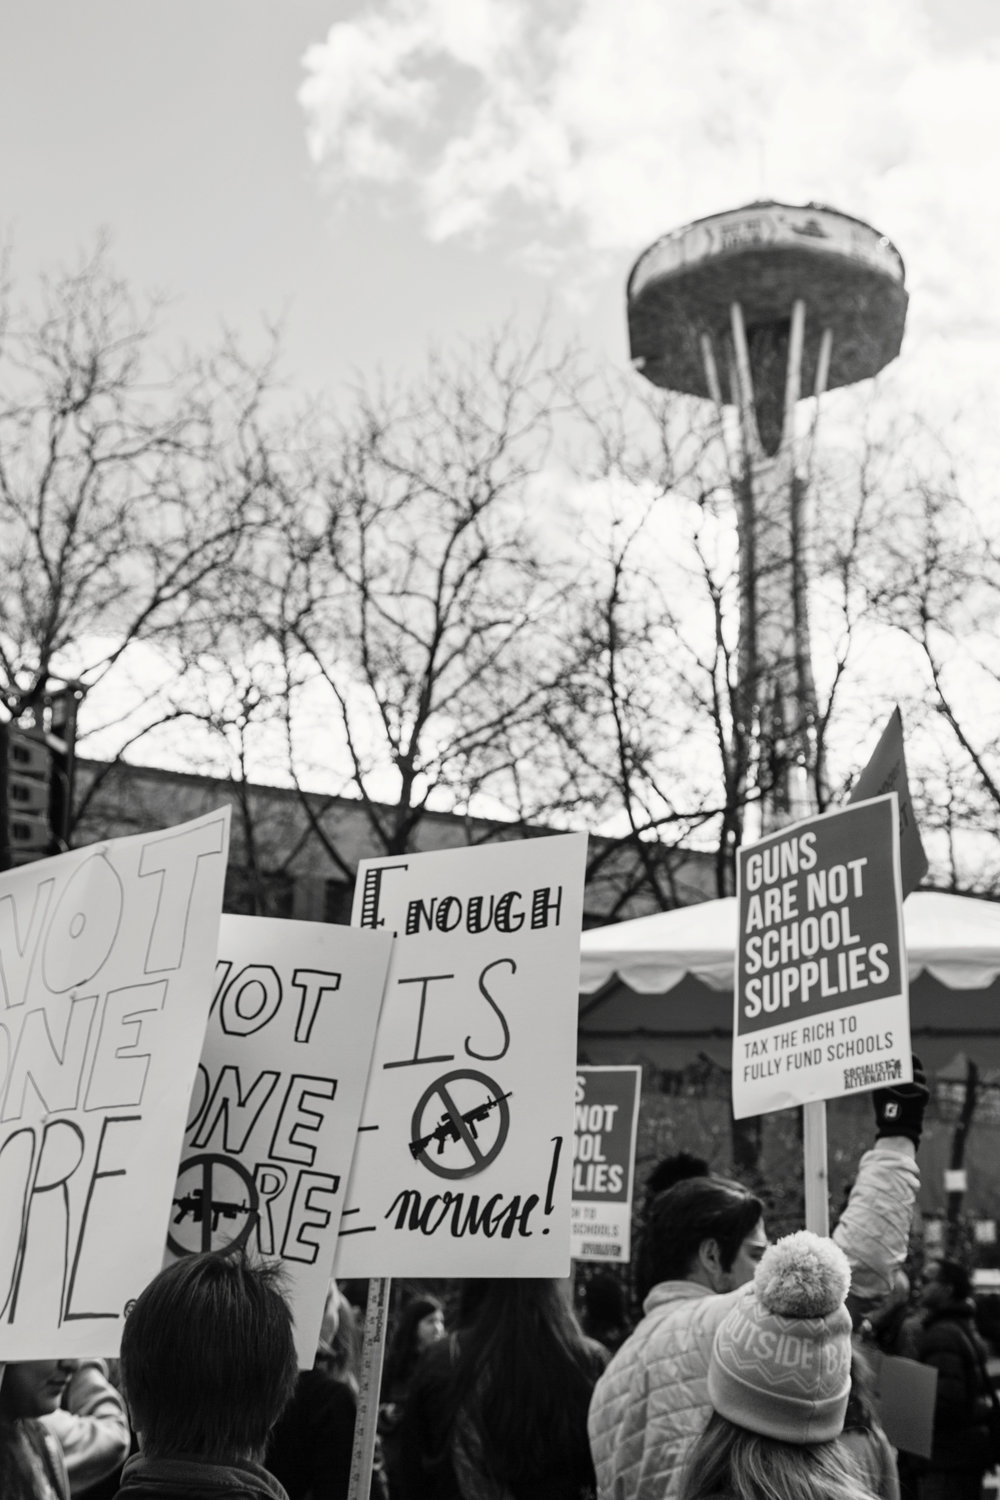 The crowd at Seattle Center, under the Space Needle